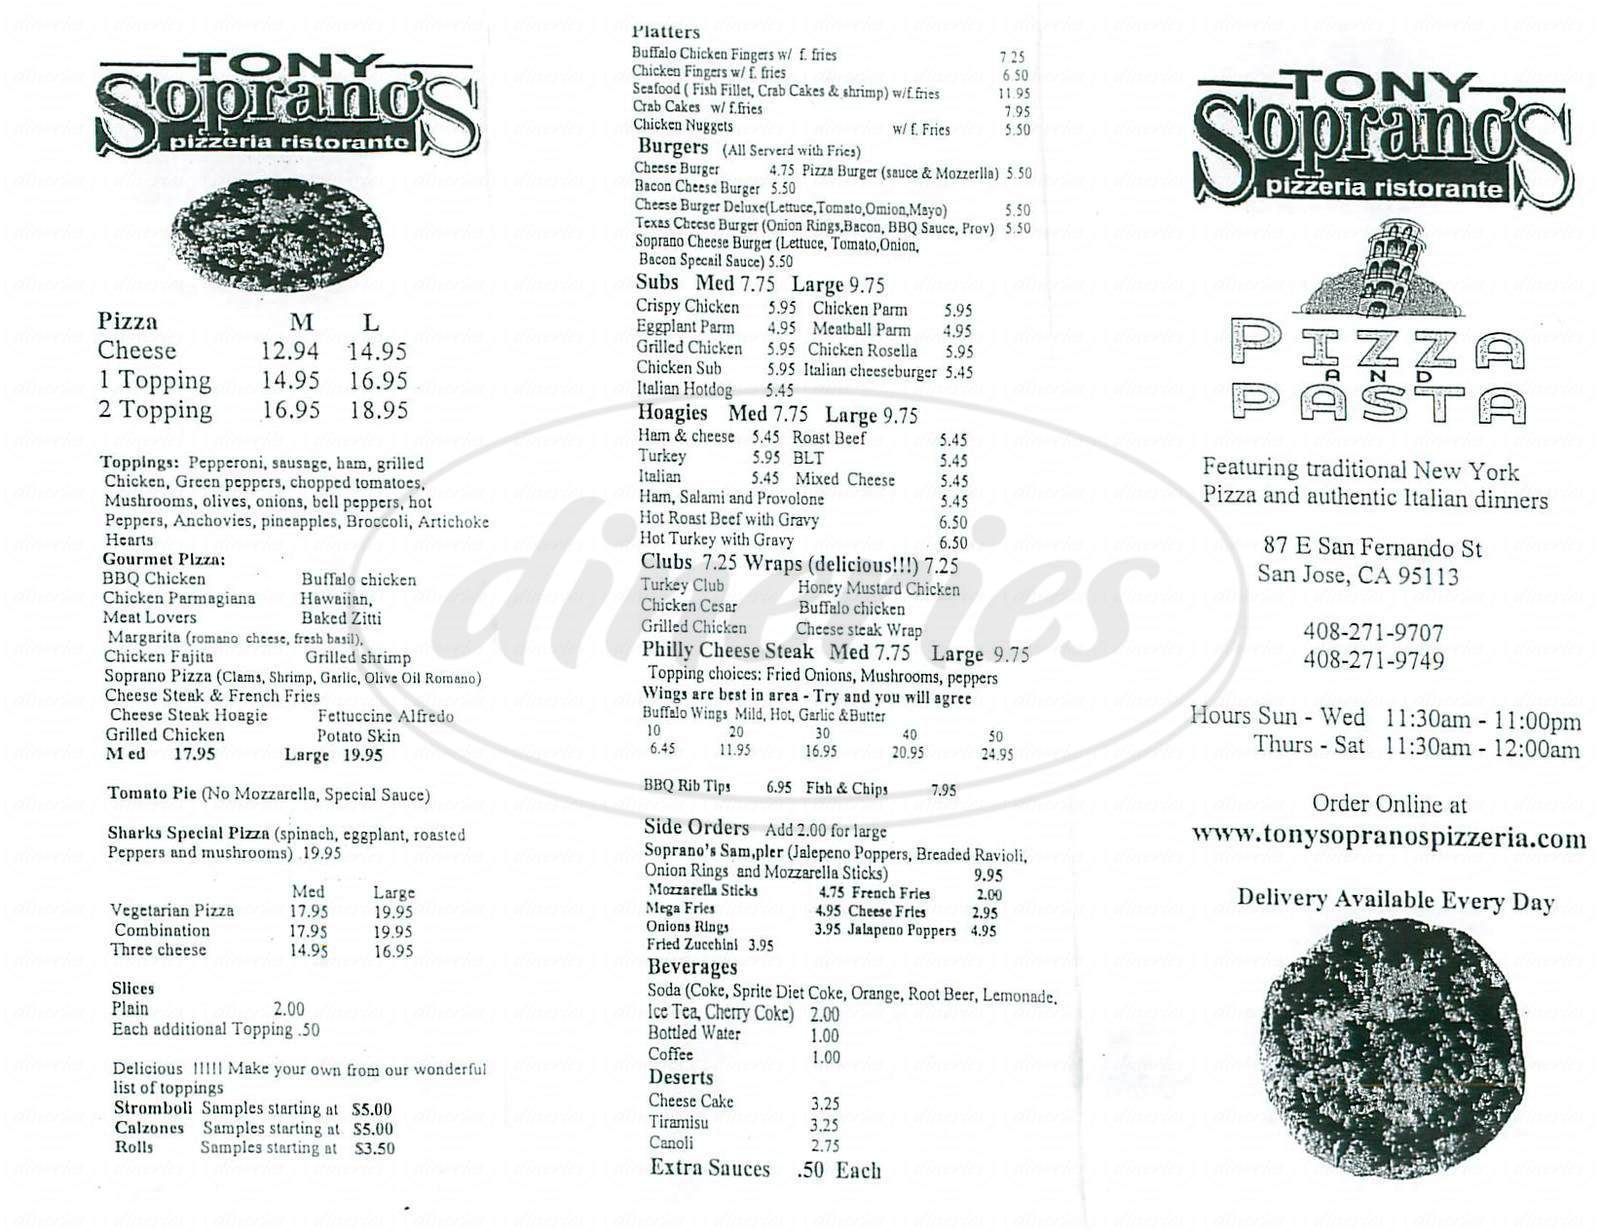 menu for Tony Sopranos Pizzeria